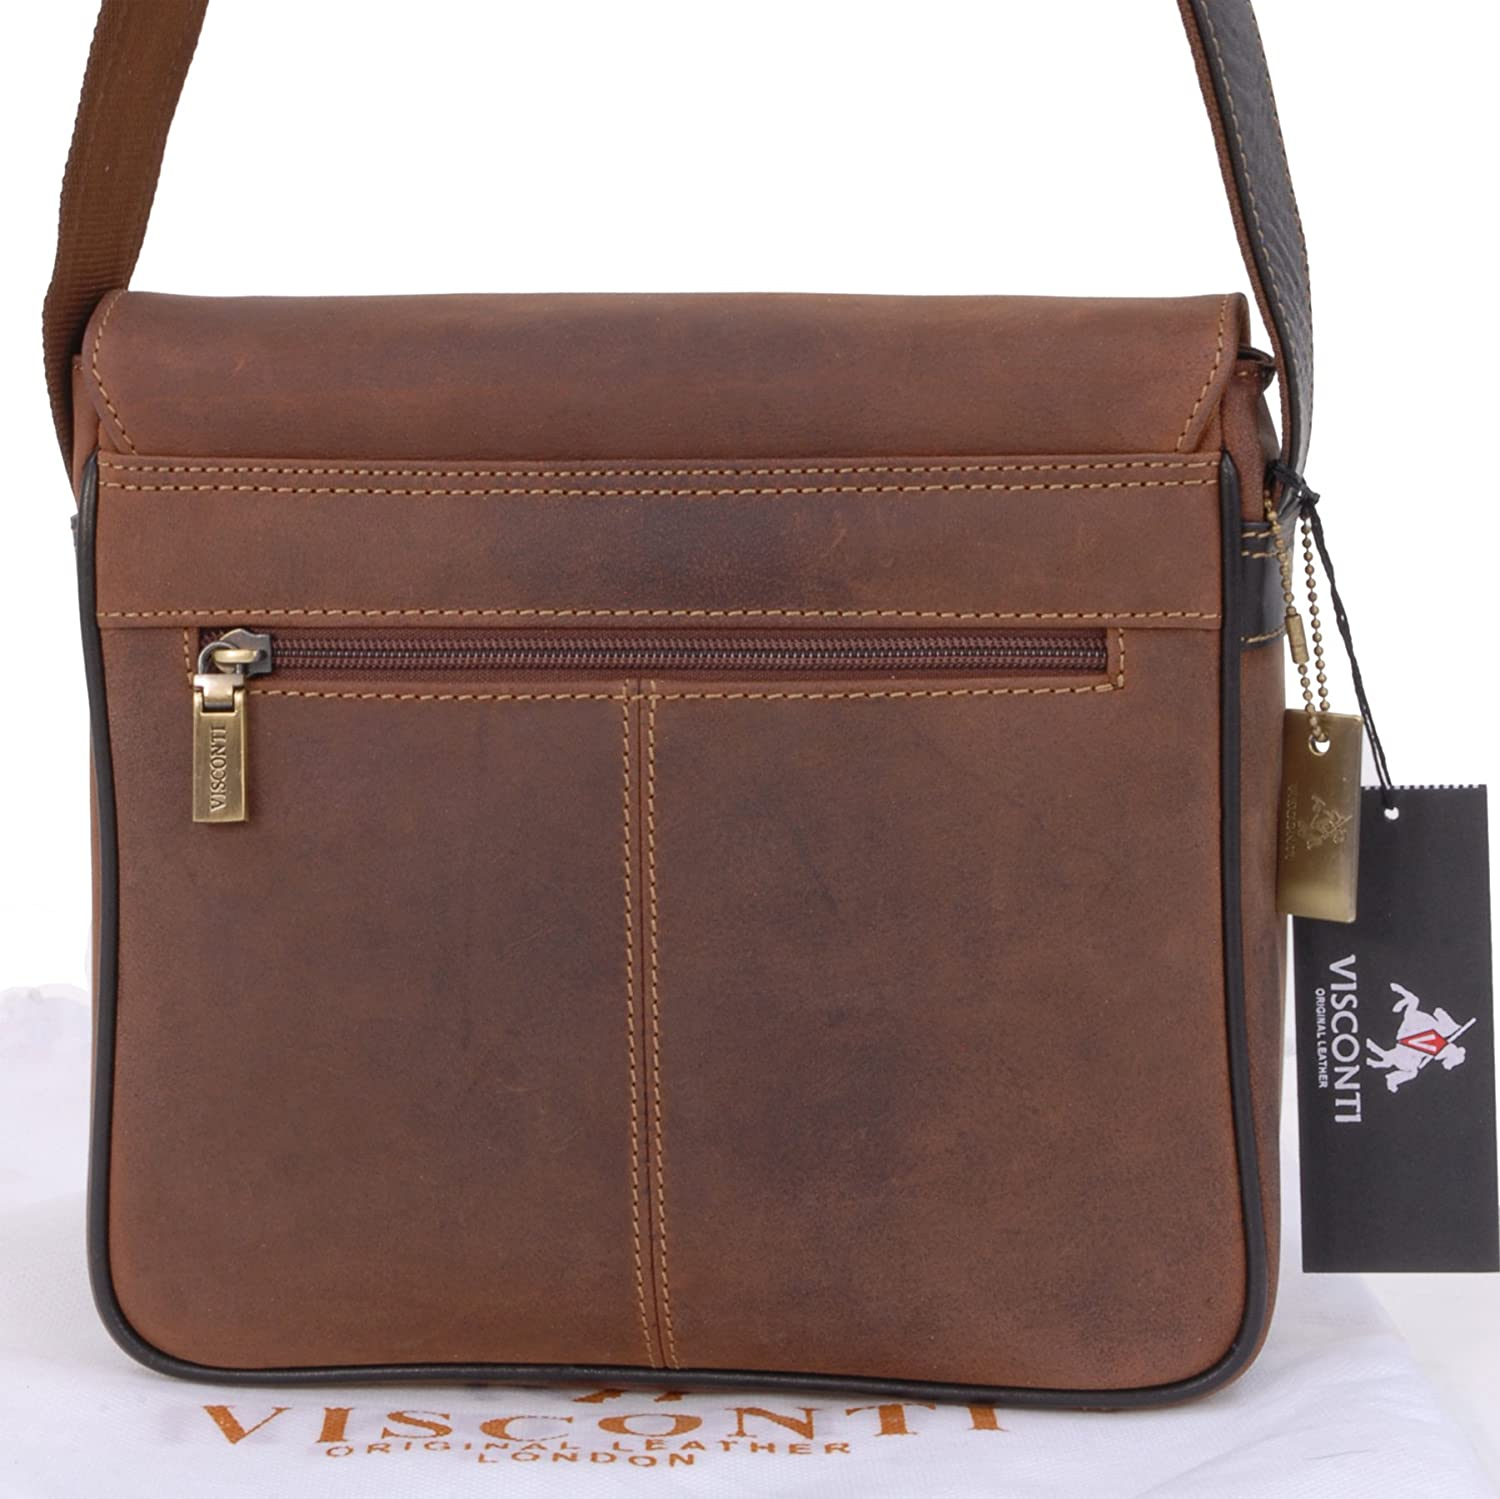 721999f1b Visconti Leather Messenger Organiser Bag - 16012 Rumba Kindle/I-Pad Size  Oil Tan: Amazon.in: Bags, Wallets & Luggage